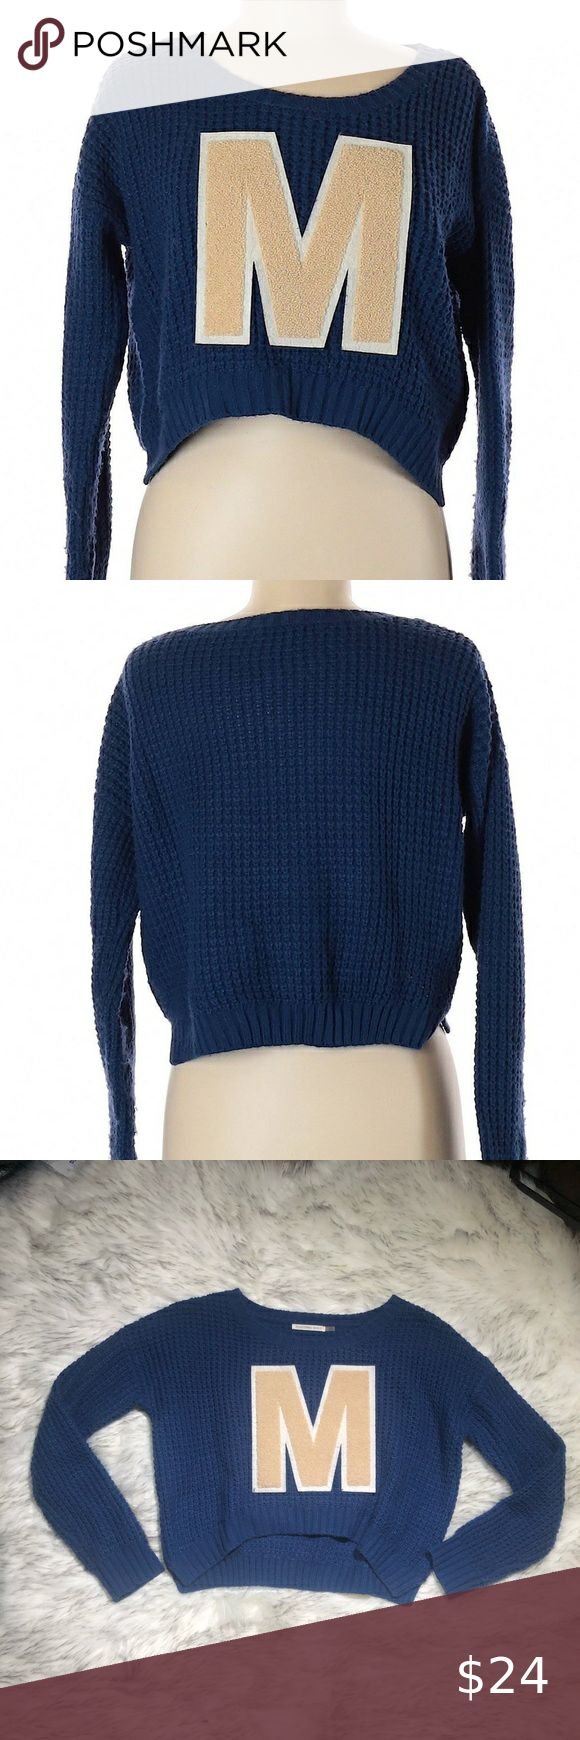 Mustard Seed Nordstrom Letter M Cropped Sweater • Mustard